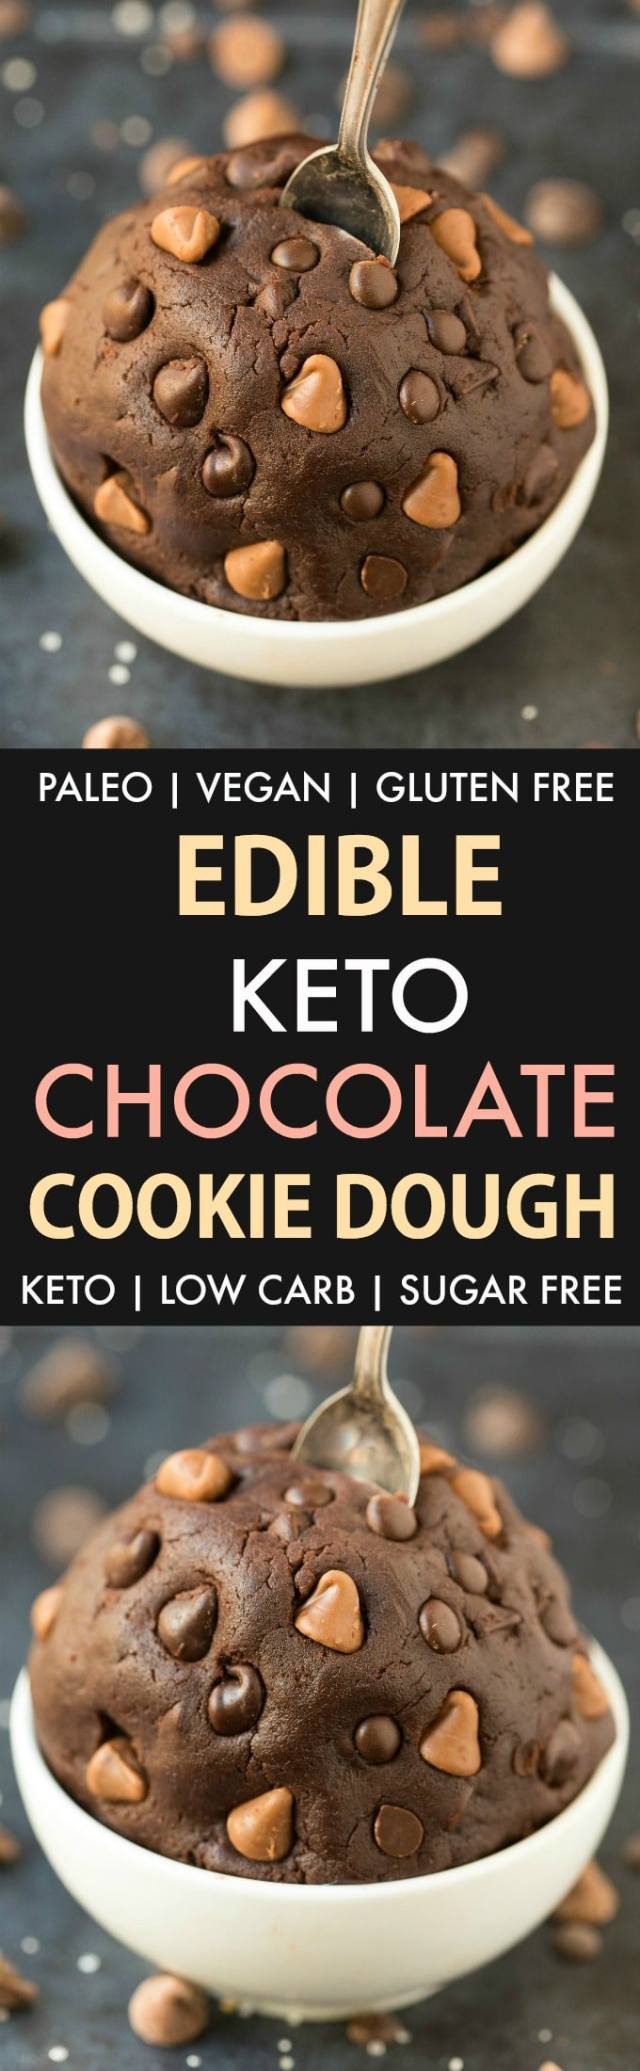 Edible Low Carb Keto Chocolate Cookie Dough in a collage